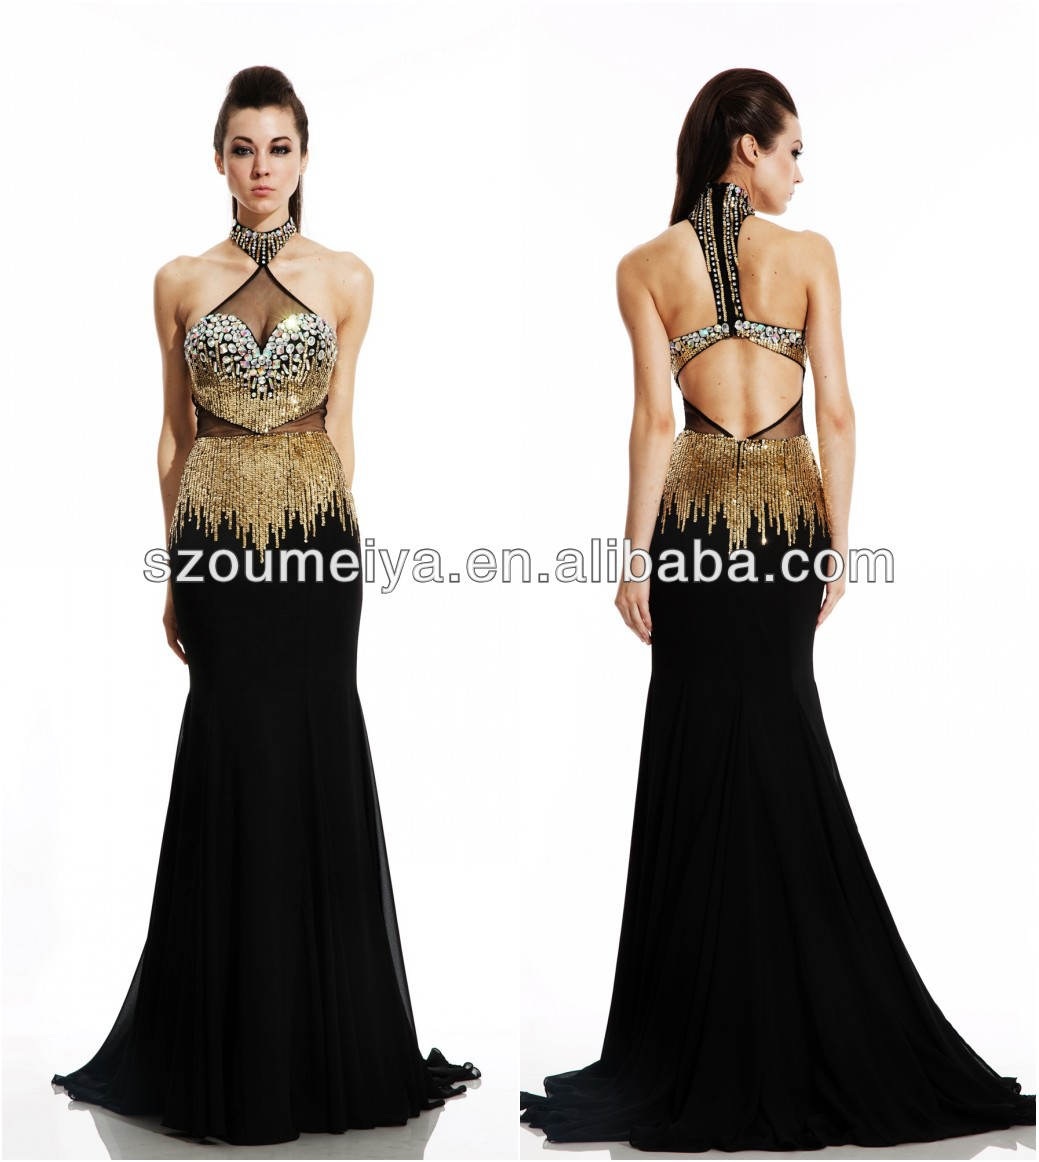 High Quality Black Gold Prom Dresses Promotion-Shop for High ...